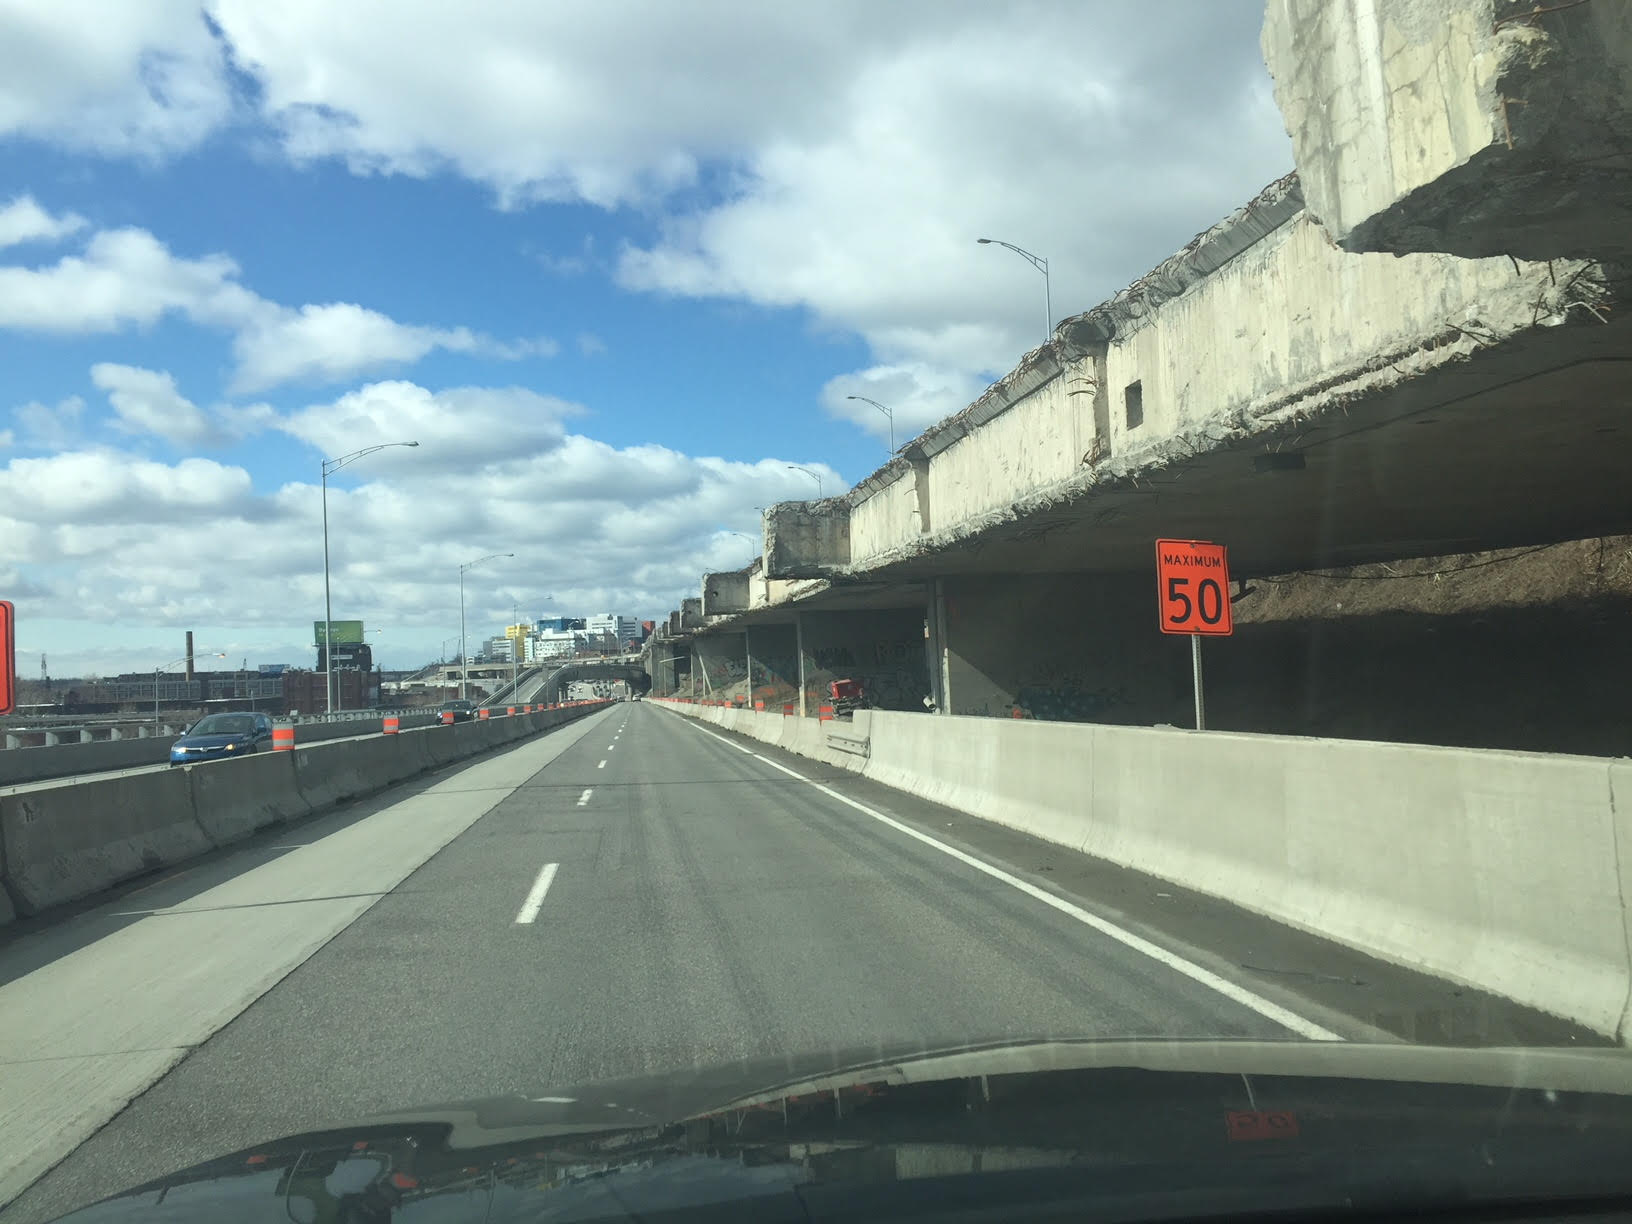 The drive from Montreal city centre to Kahnawake moves through serious construction zones...